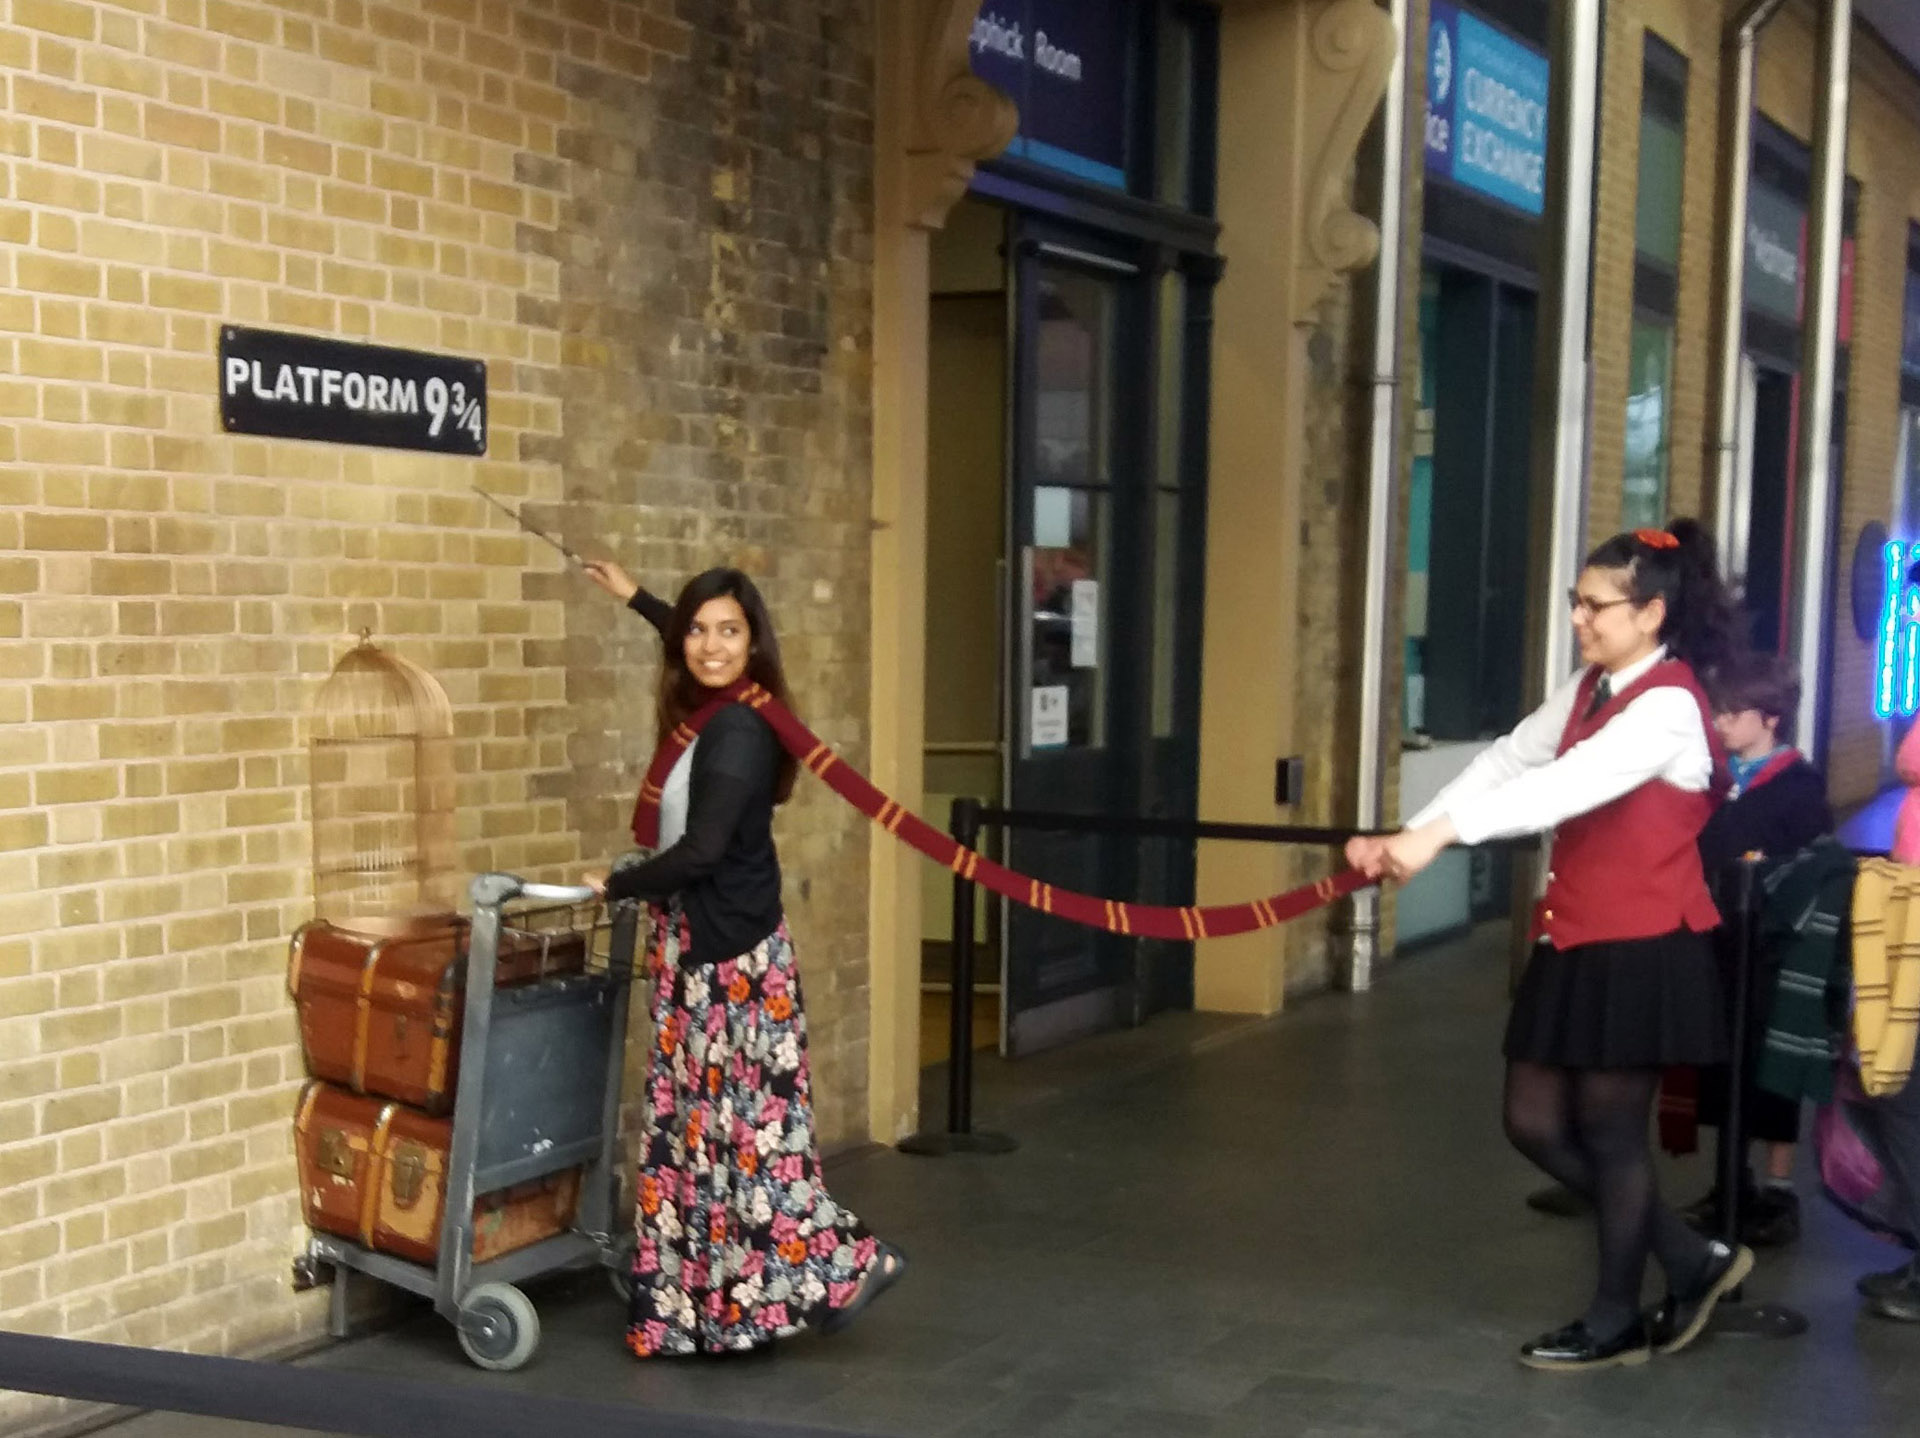 Platform 9 3/4 Kings Cross Station picture